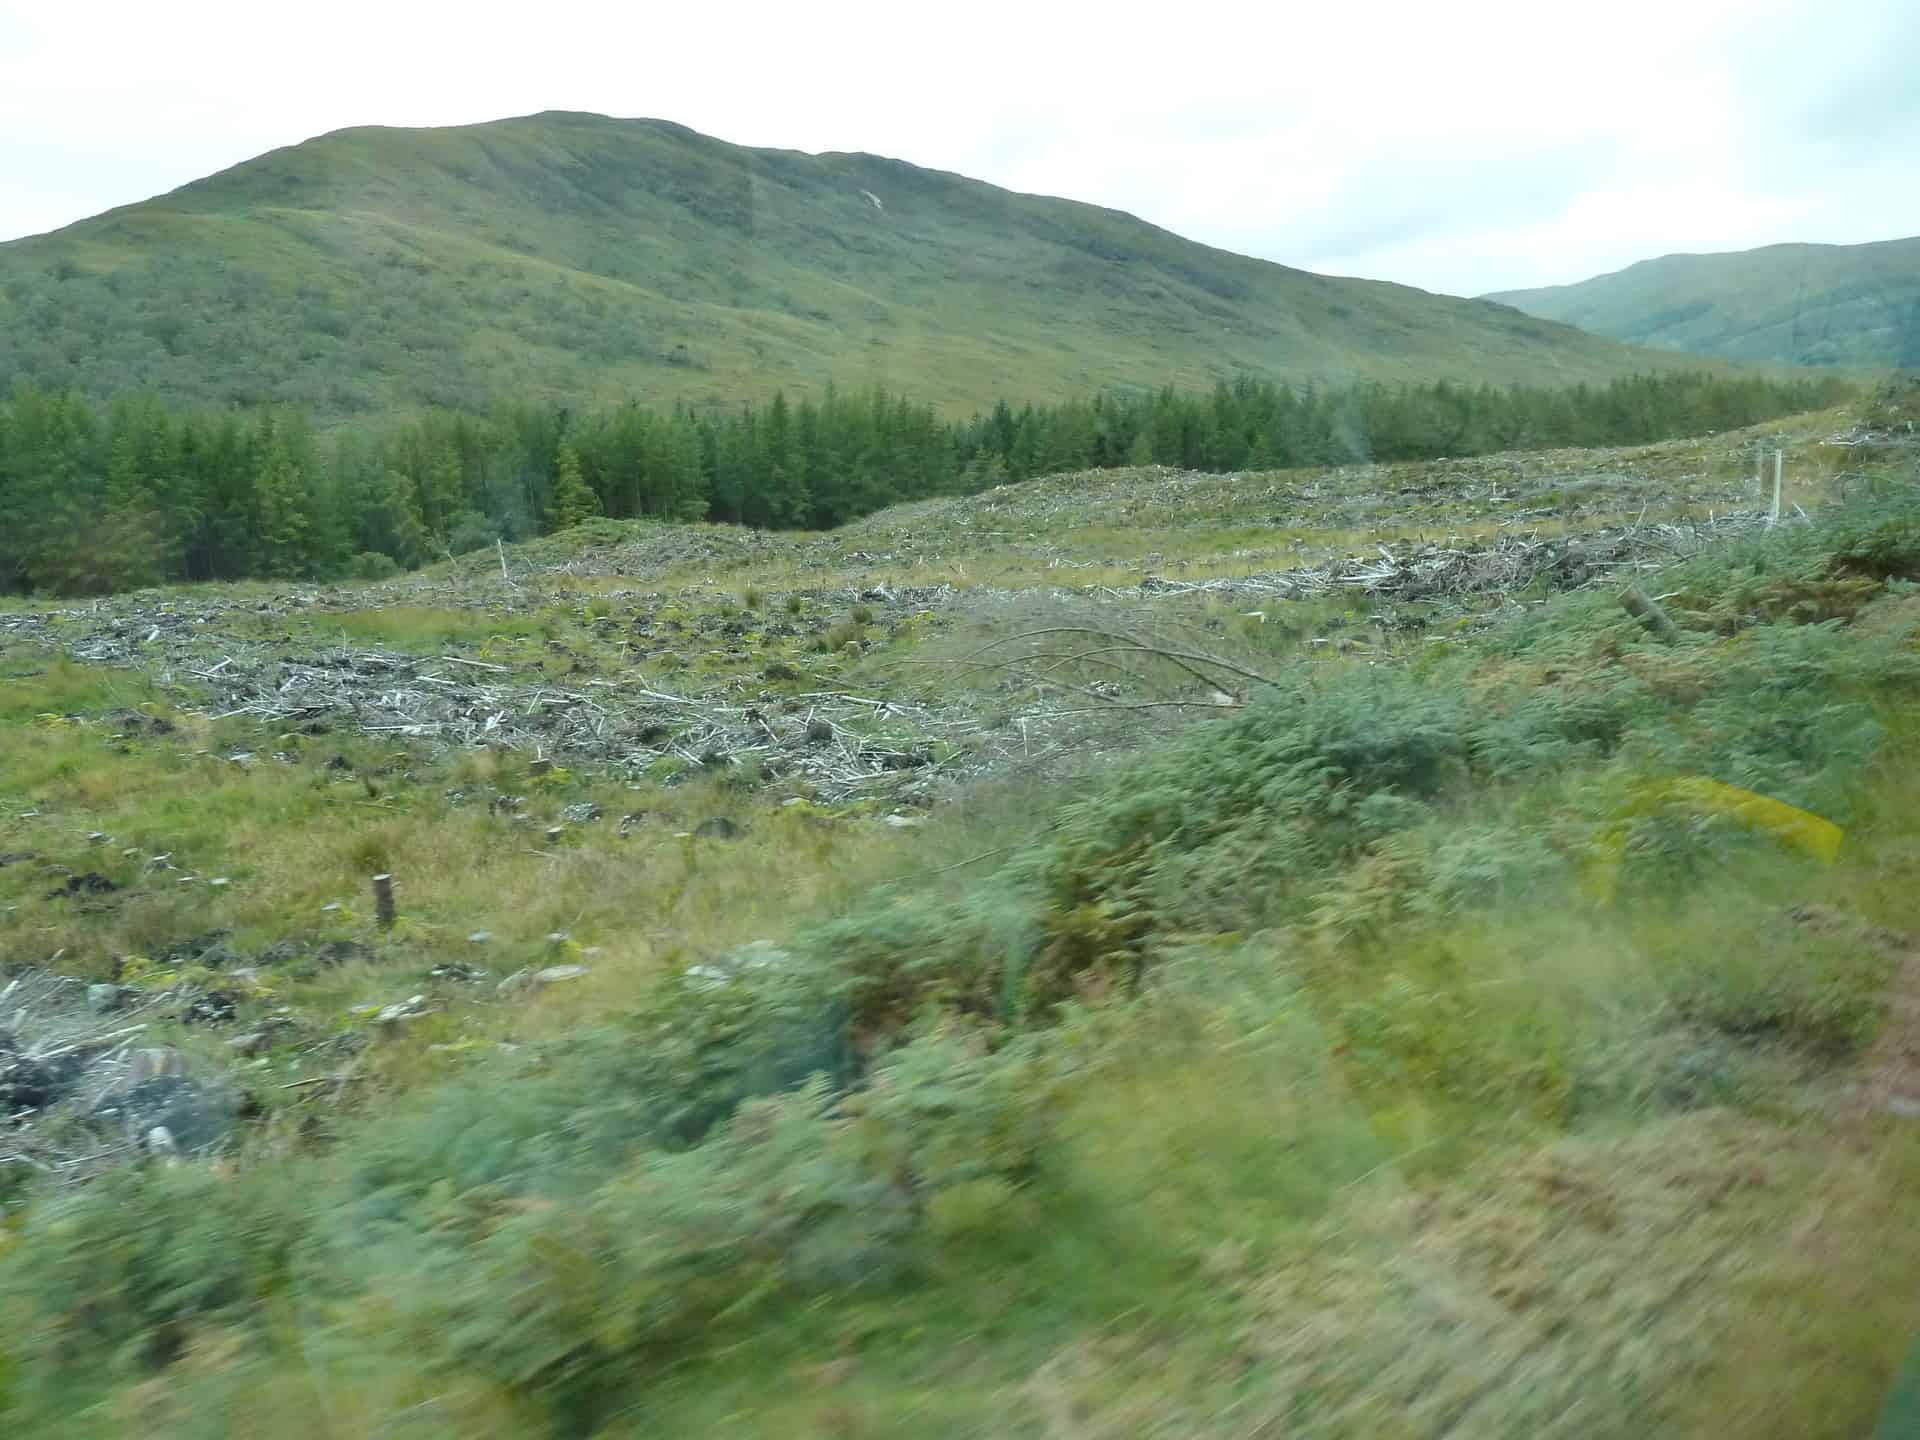 clearcut along road (see reflection in bus window)